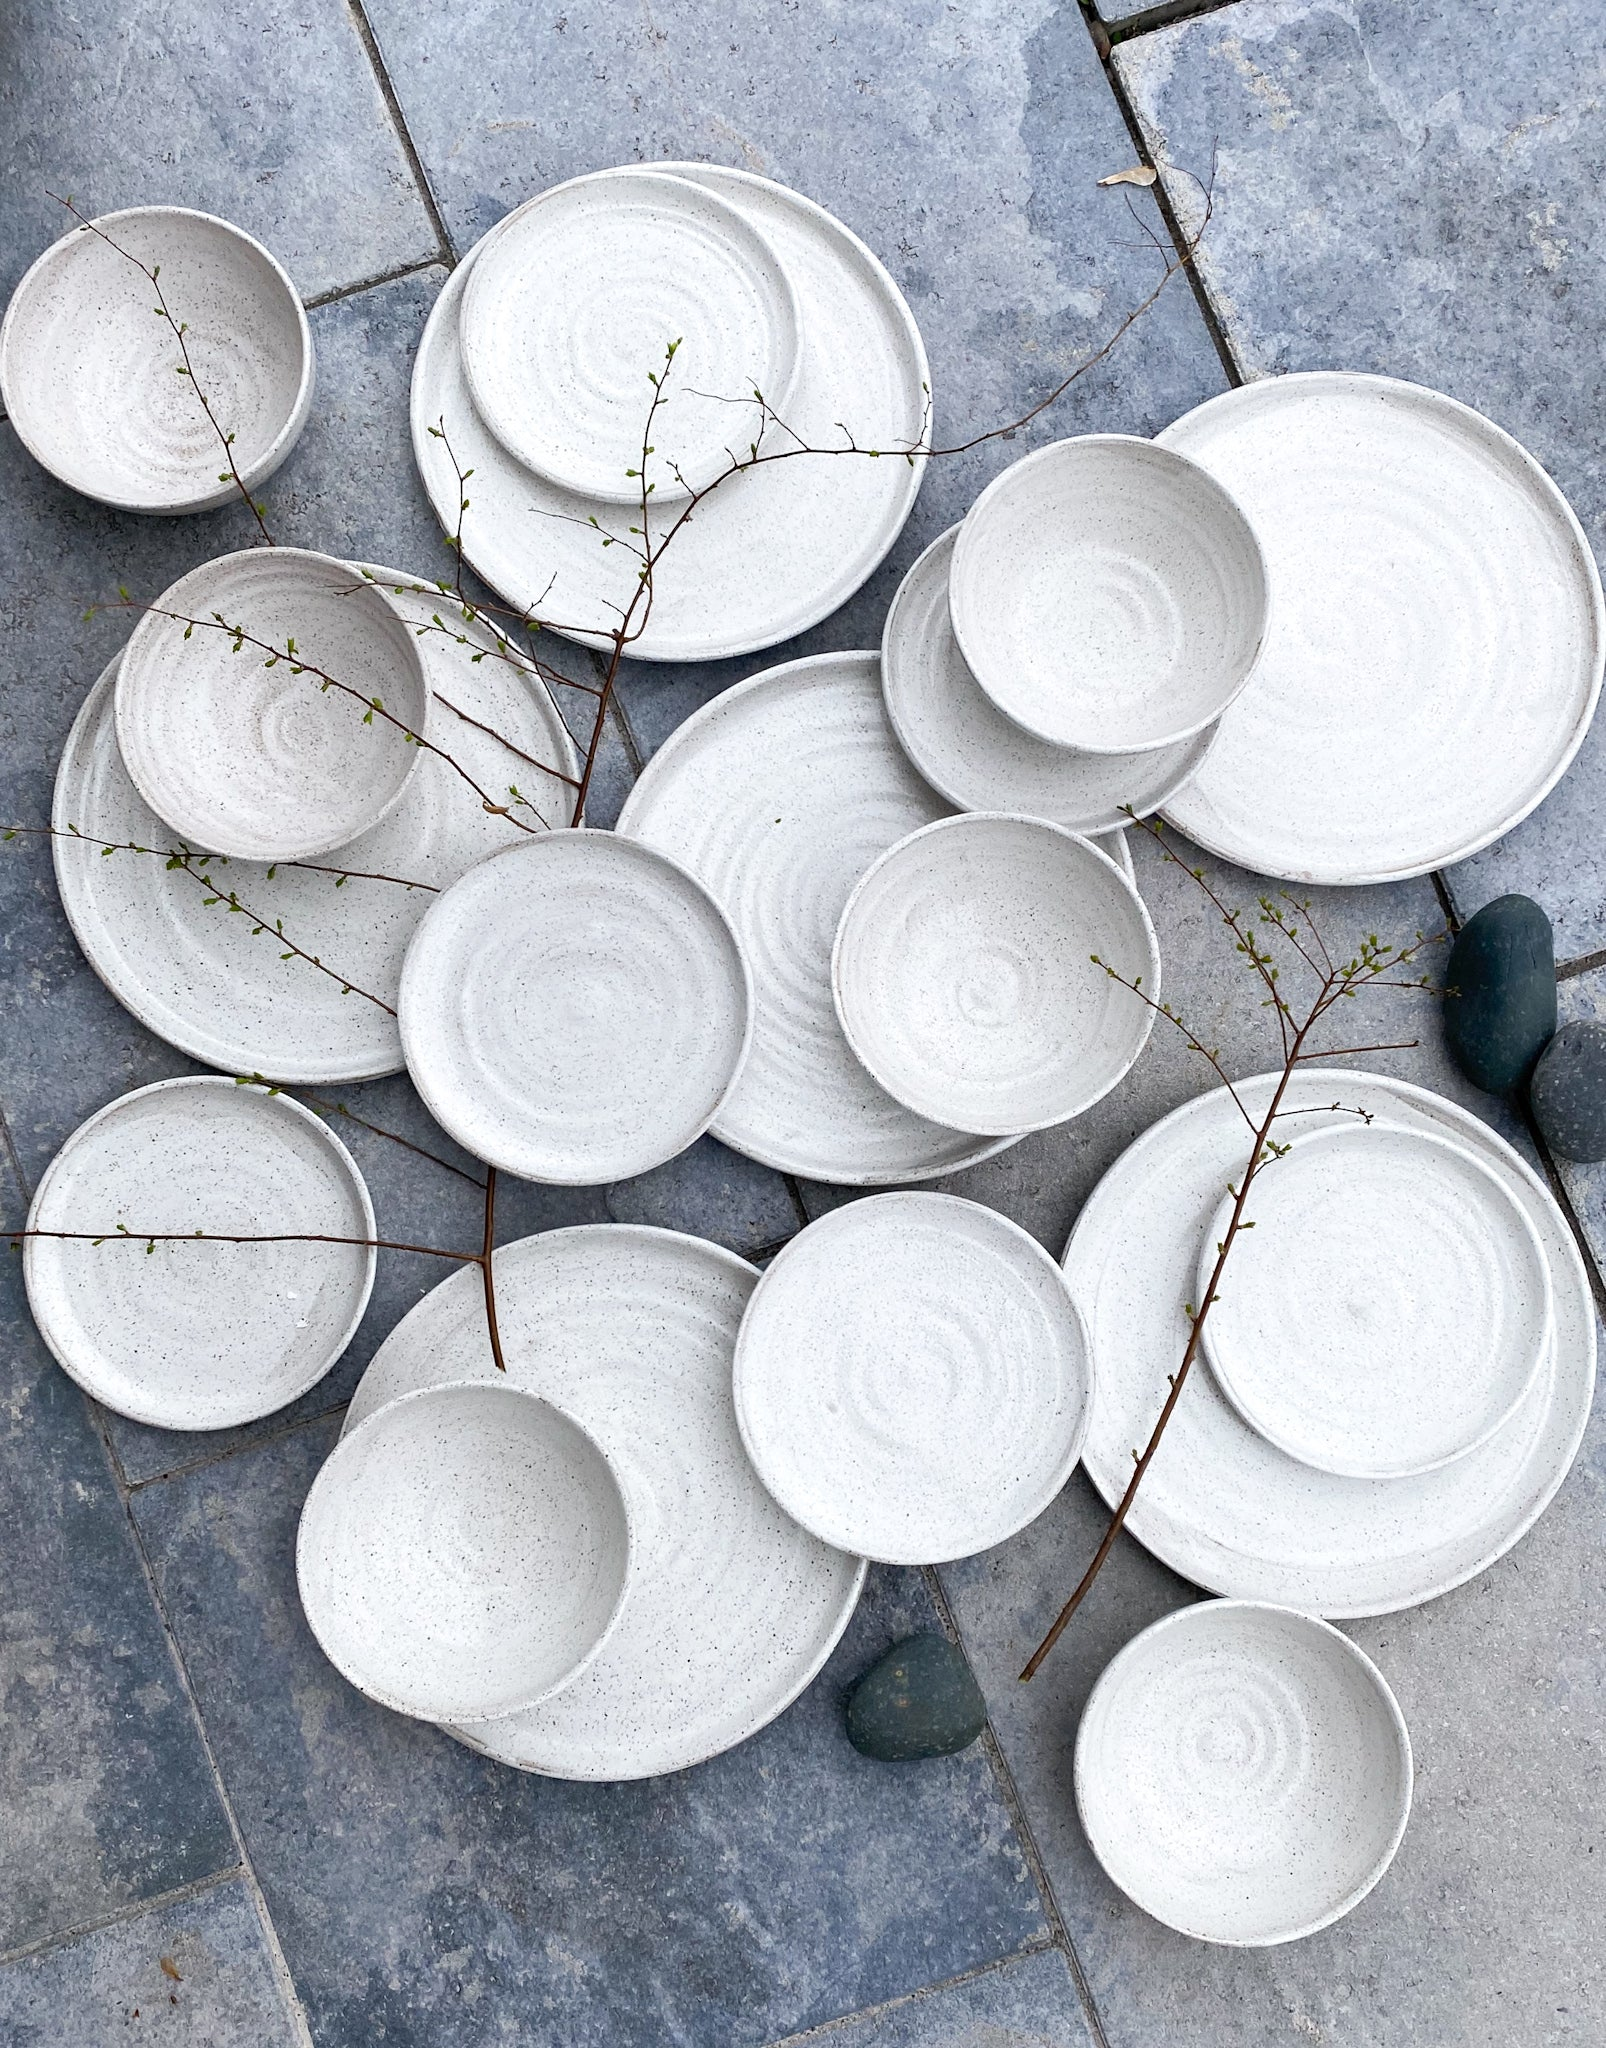 Dinnerware set of 12